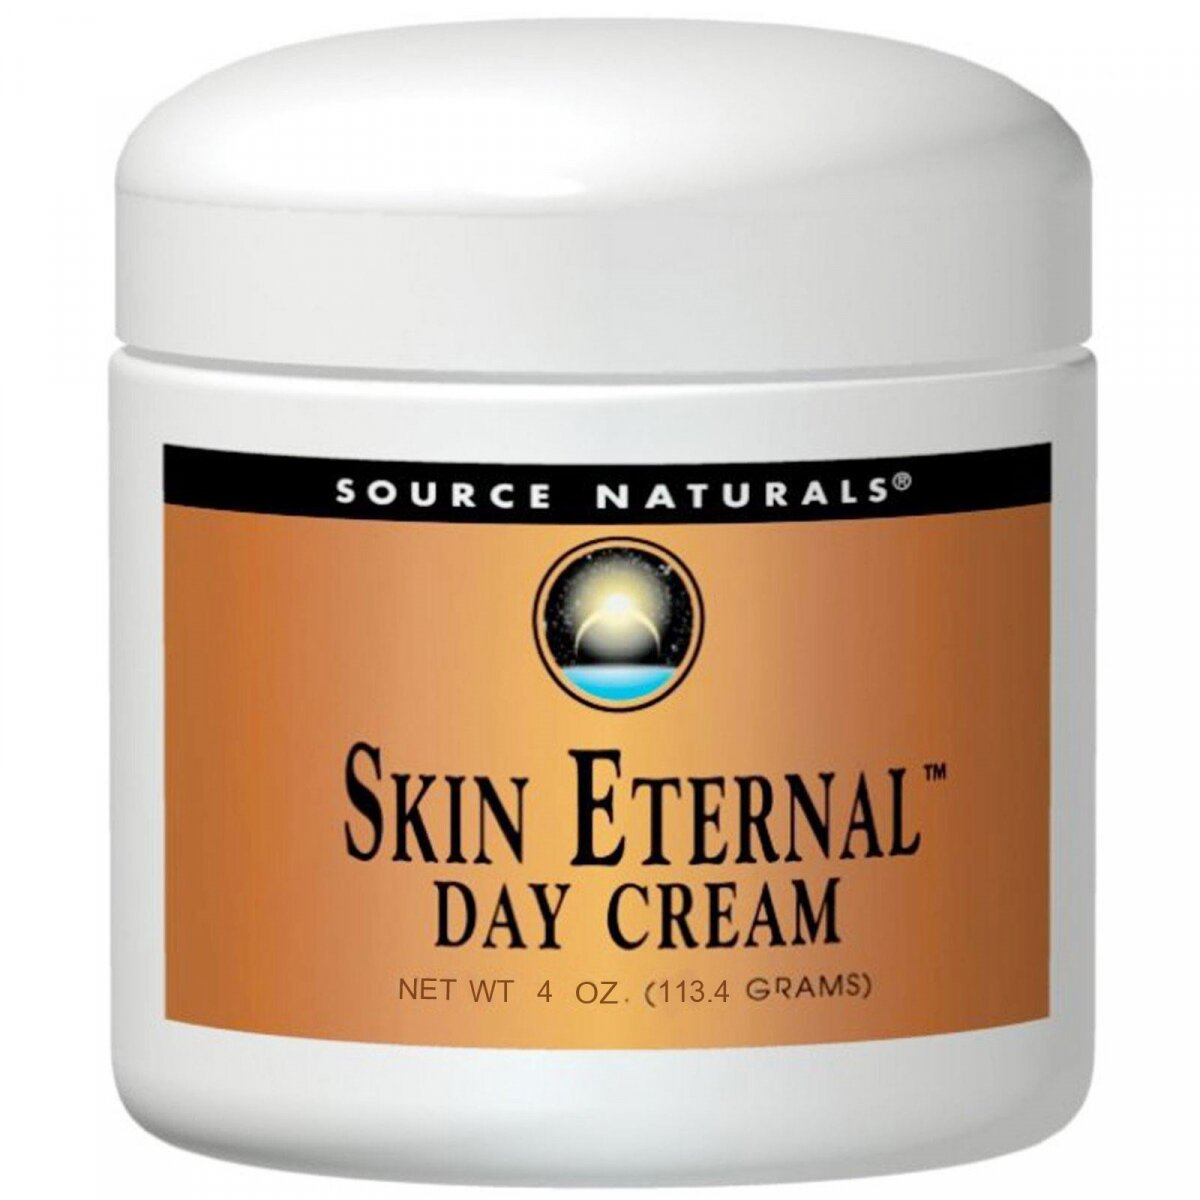 Дневной крем для лица, Day Cream, Source Naturals, 113.4 г